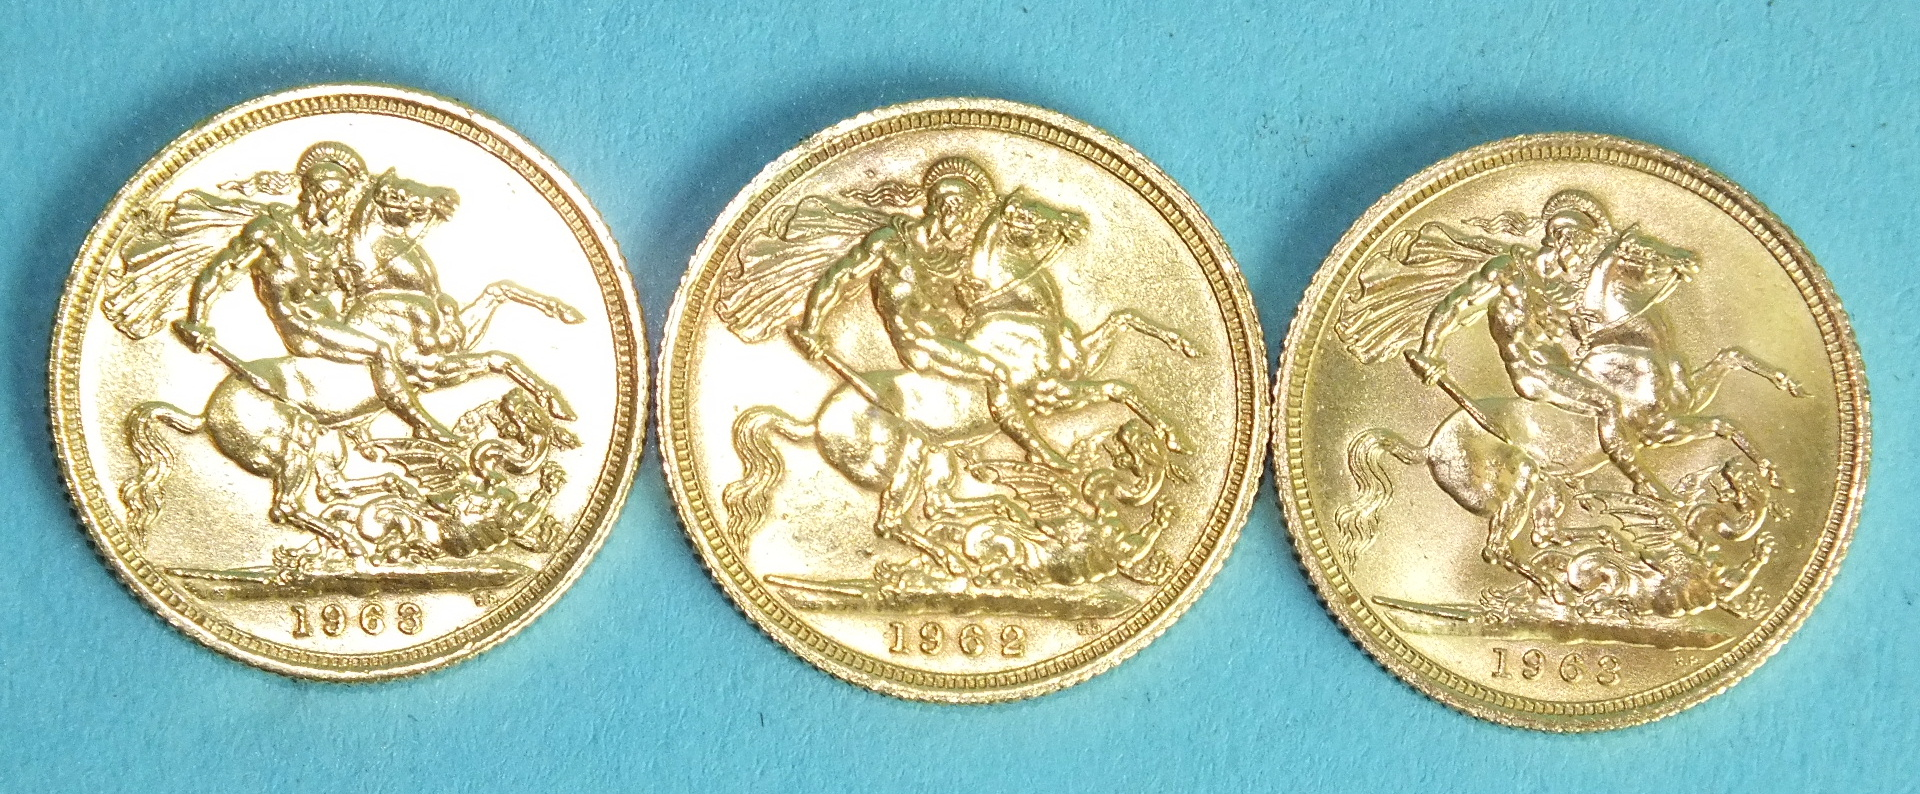 Lot 377 - An Elizabeth II 1962 sovereign and two 1963 sovereigns, (3).